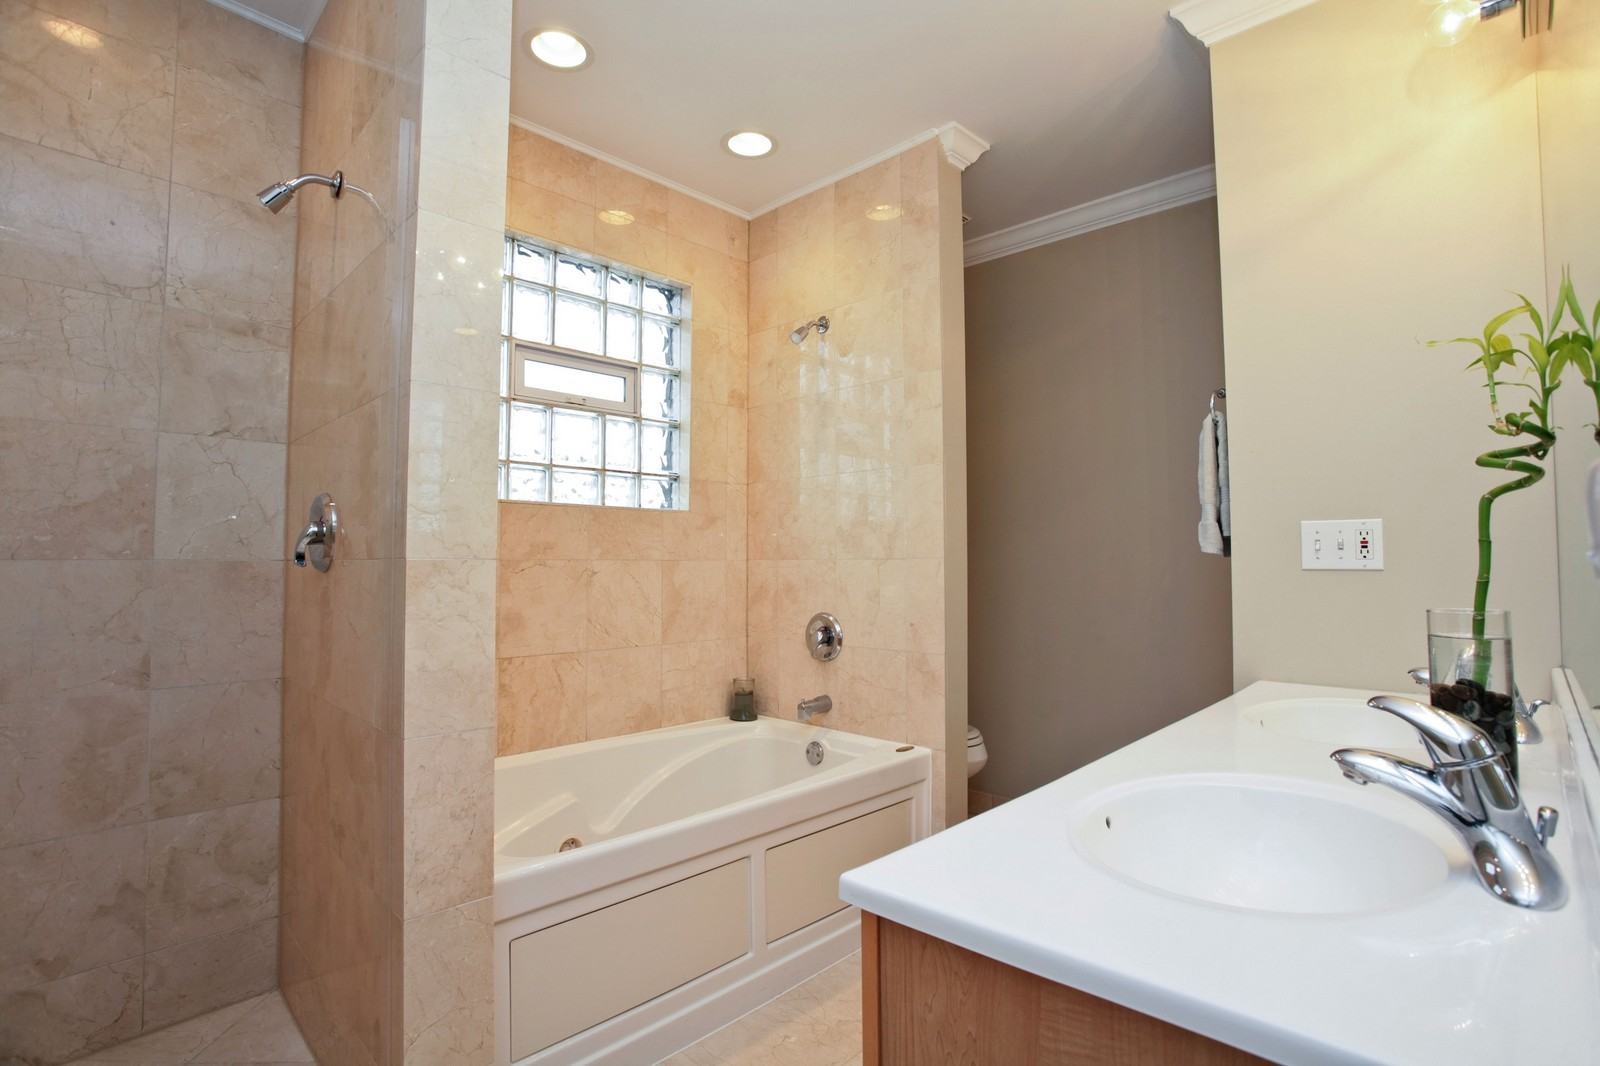 Real Estate Photography - 1700 W Chicago Ave, Unit B, Chicago, IL, 60622 - Master Bathroom